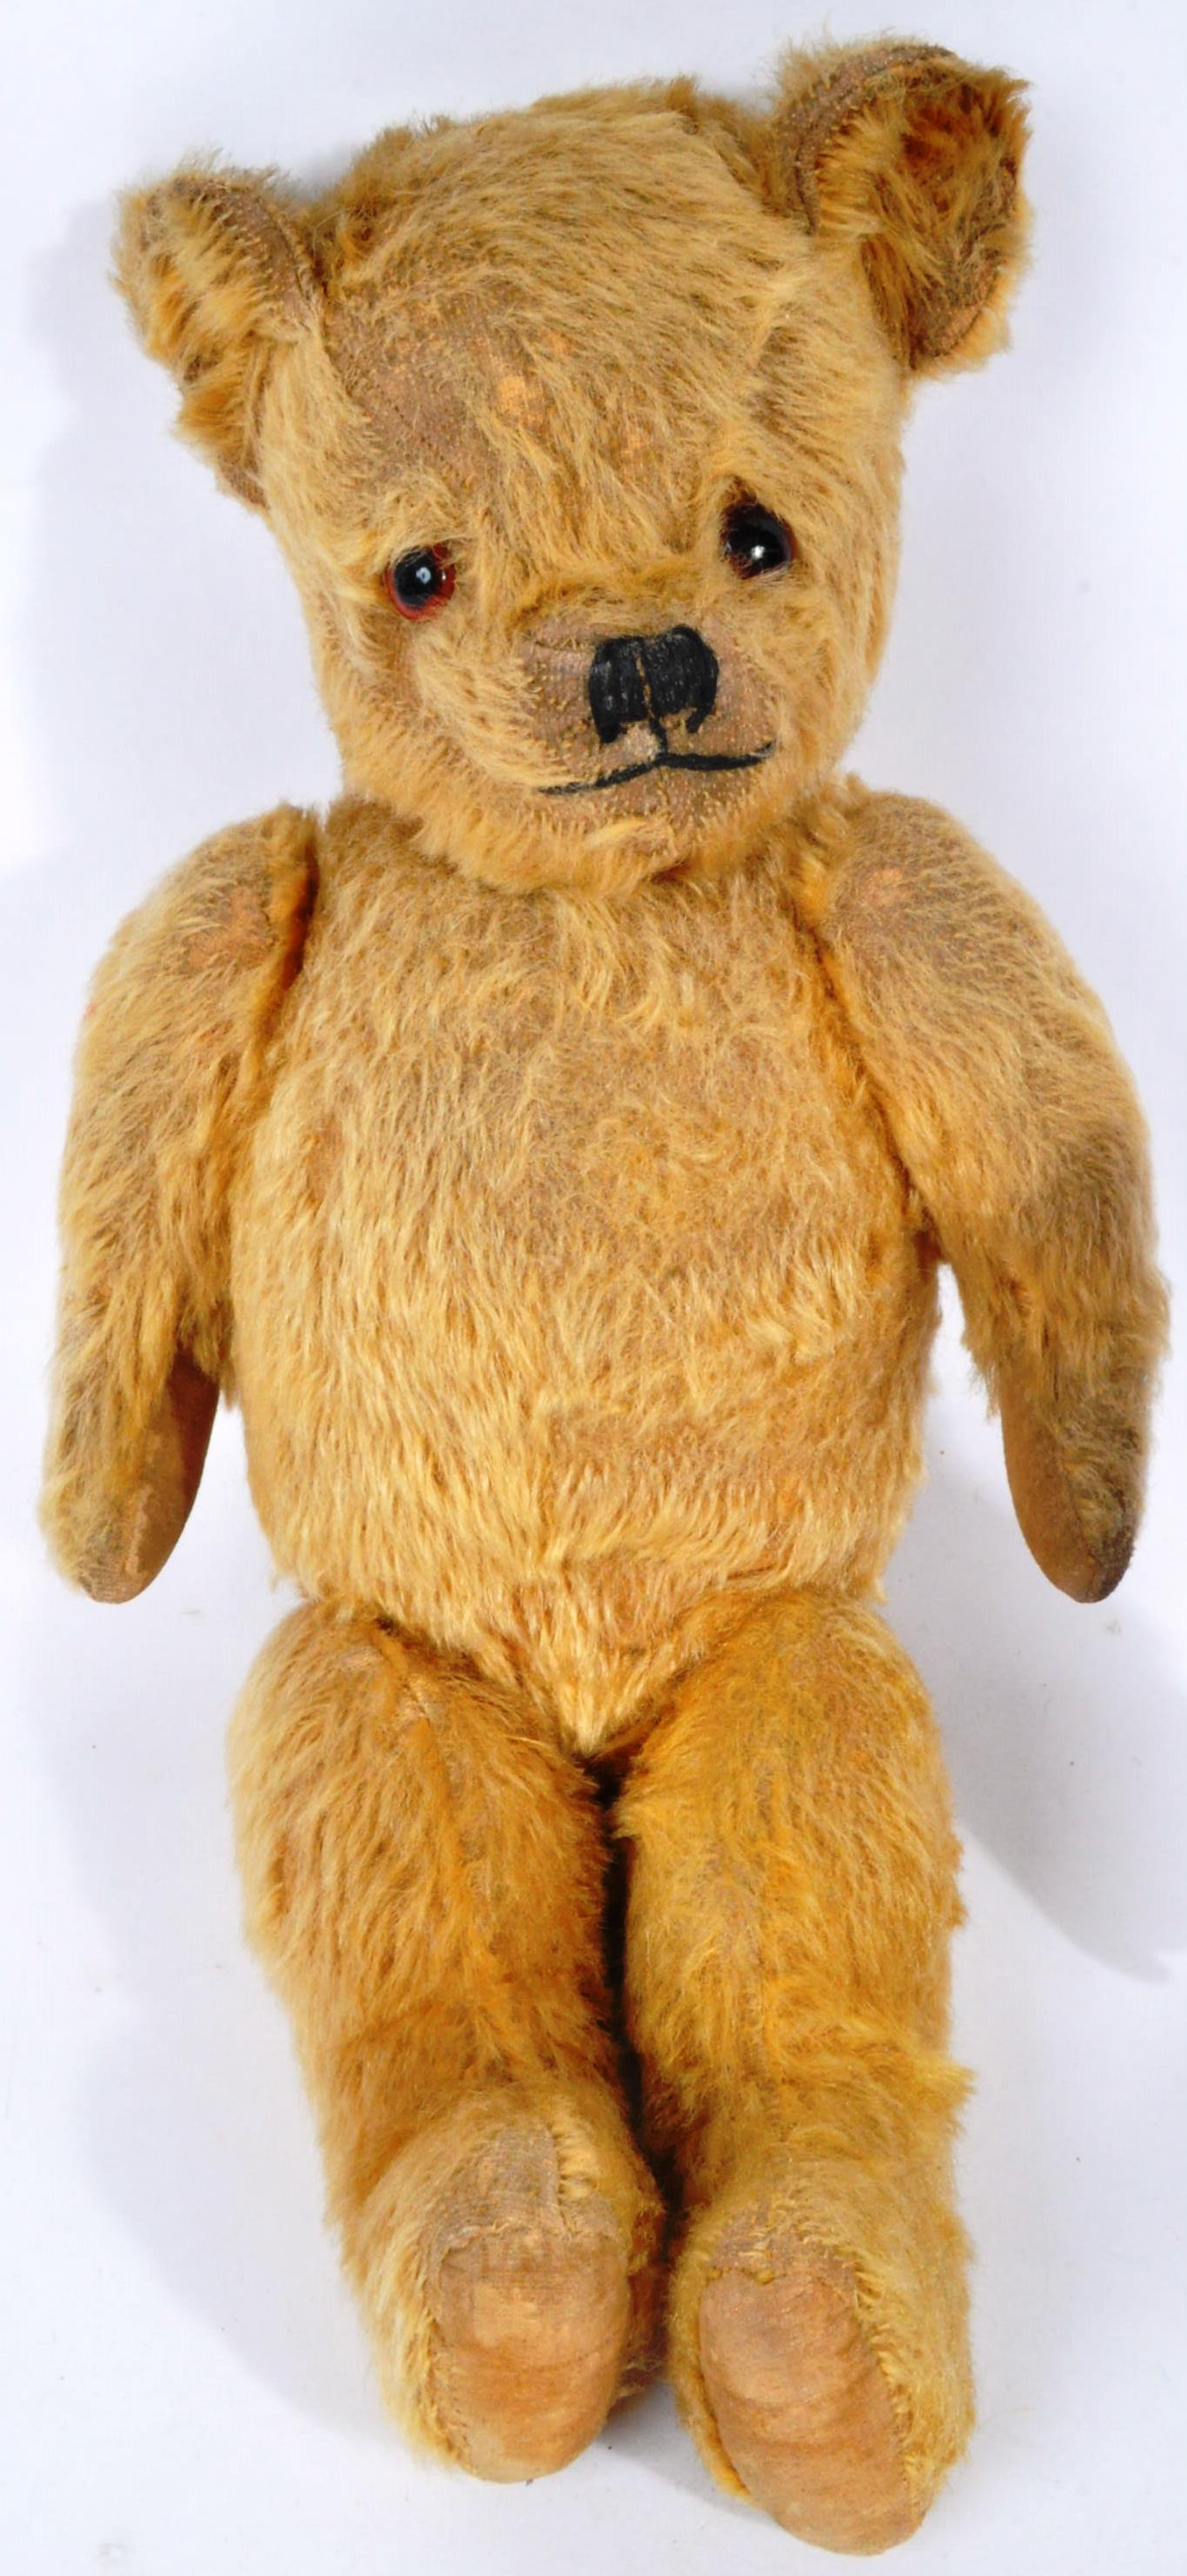 VINTAGE ENGLISH TEDDY BEAR AND GERMAN SCHUCO DOLL - Image 2 of 8